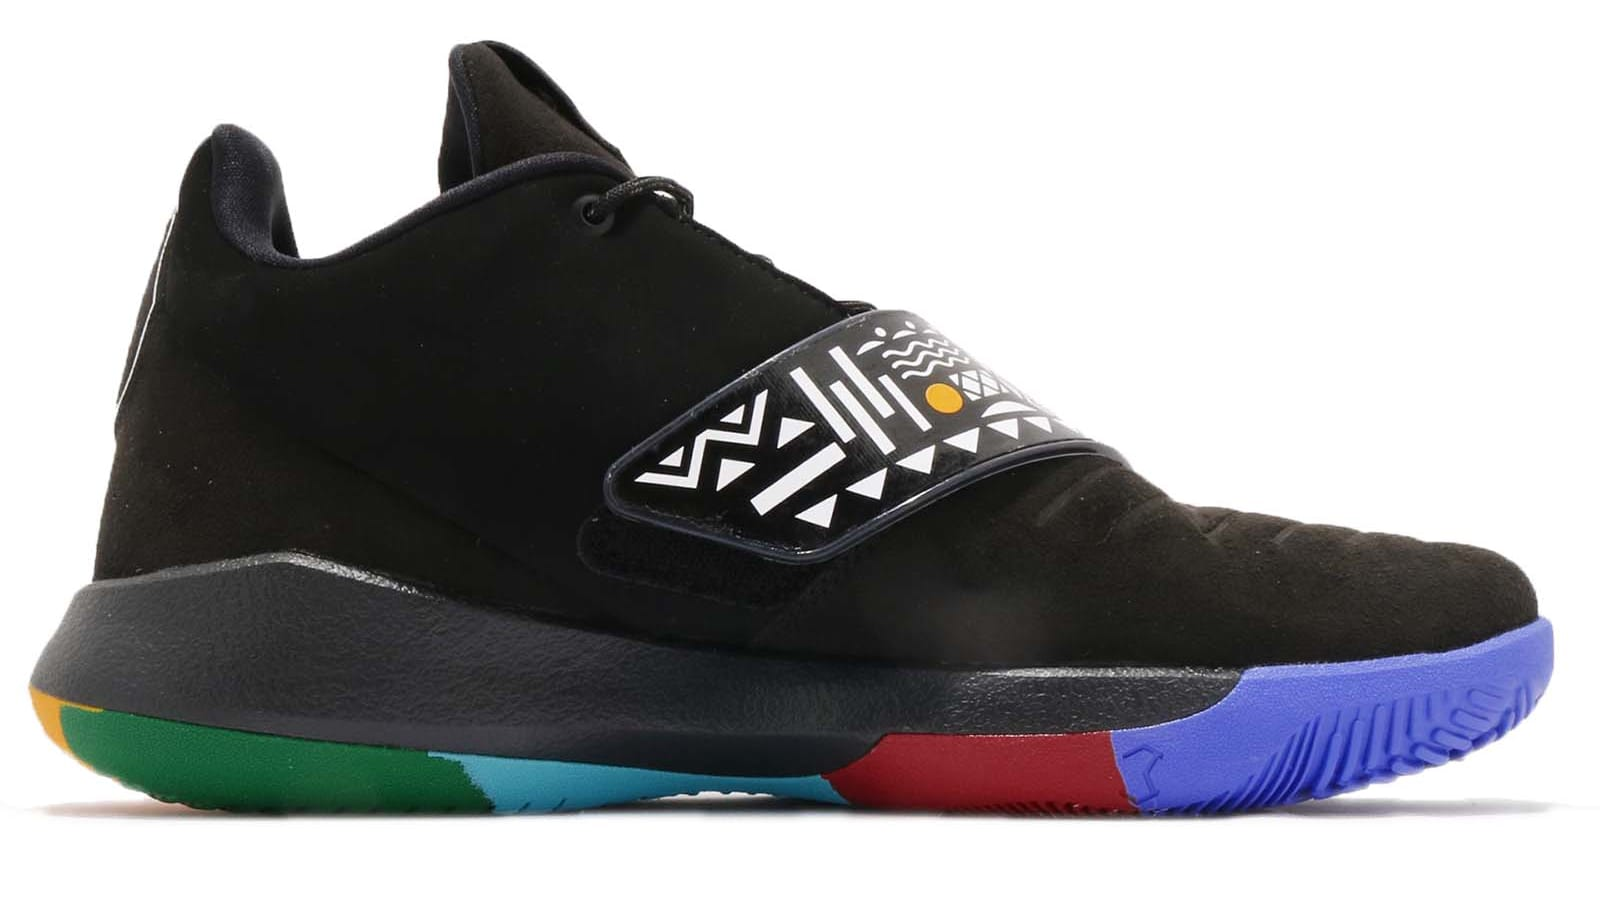 competitive price 50b0e 0d497 ... coupon code for air jordan cp3 11 aa1272 007 martin tv 220c6 ae793